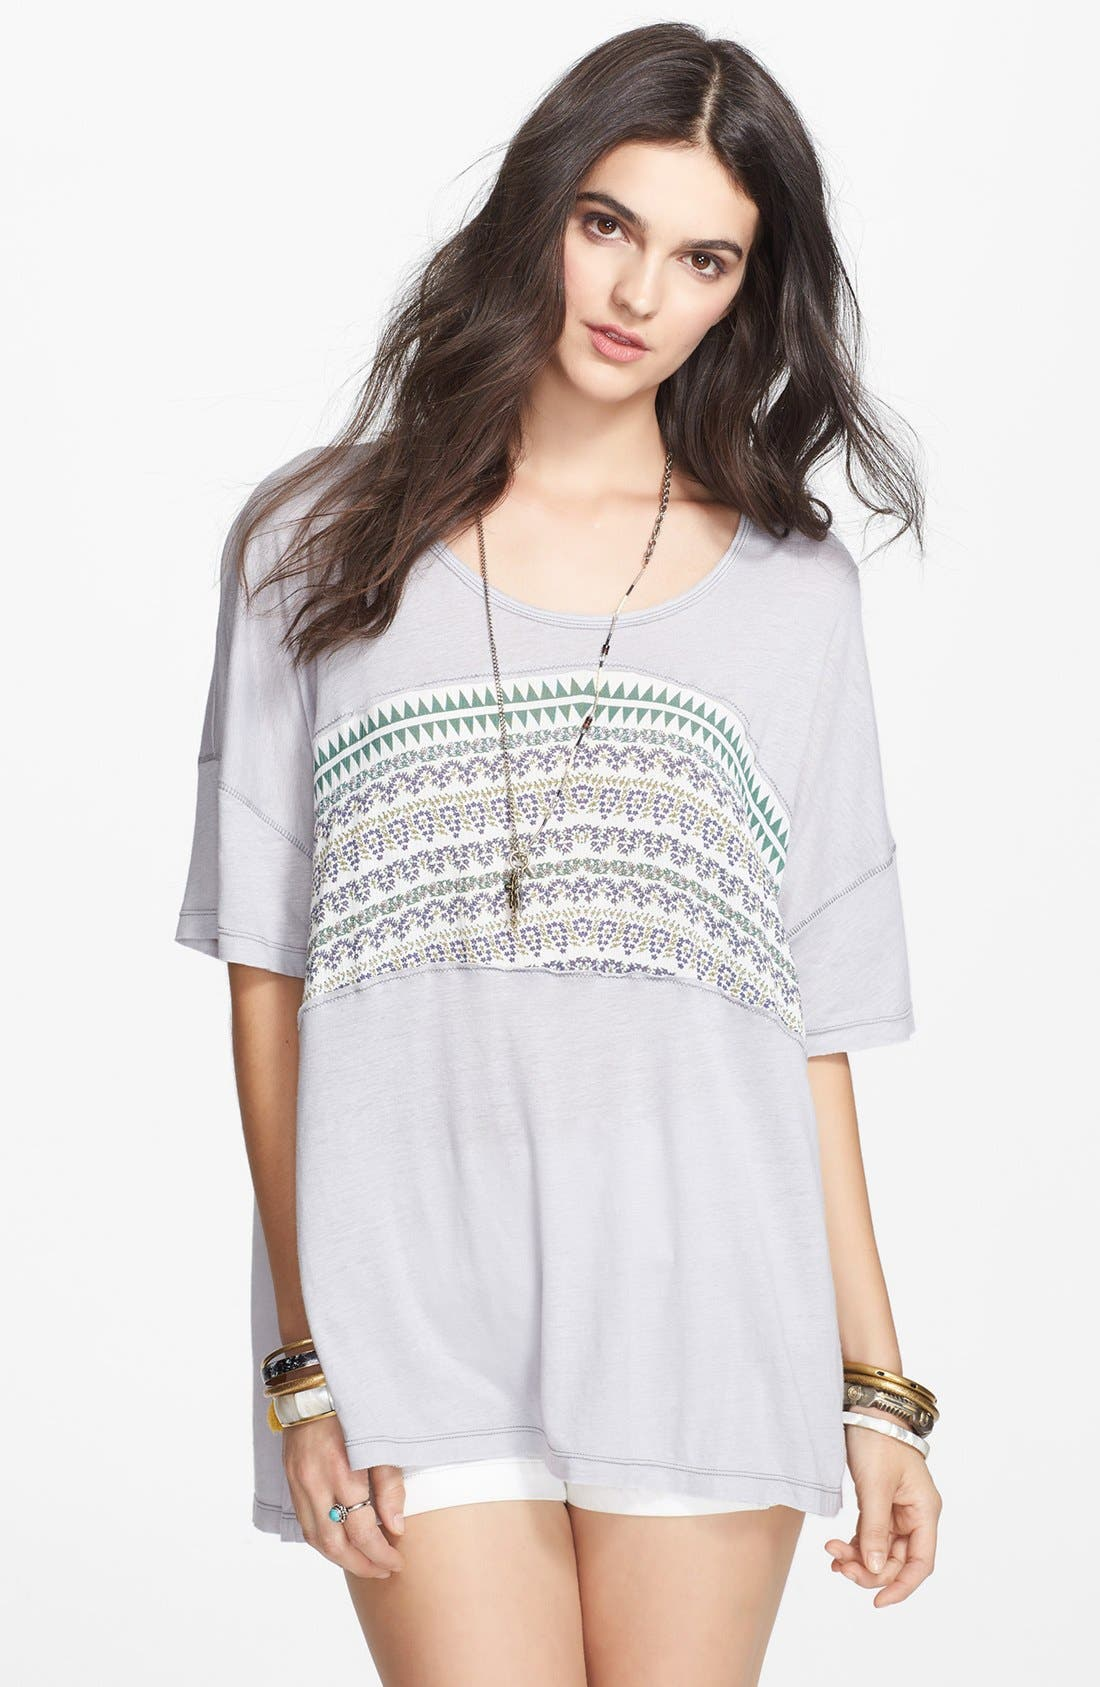 Alternate Image 1 Selected - Free People 'Stars of Orion' V-Back High/Low Tee